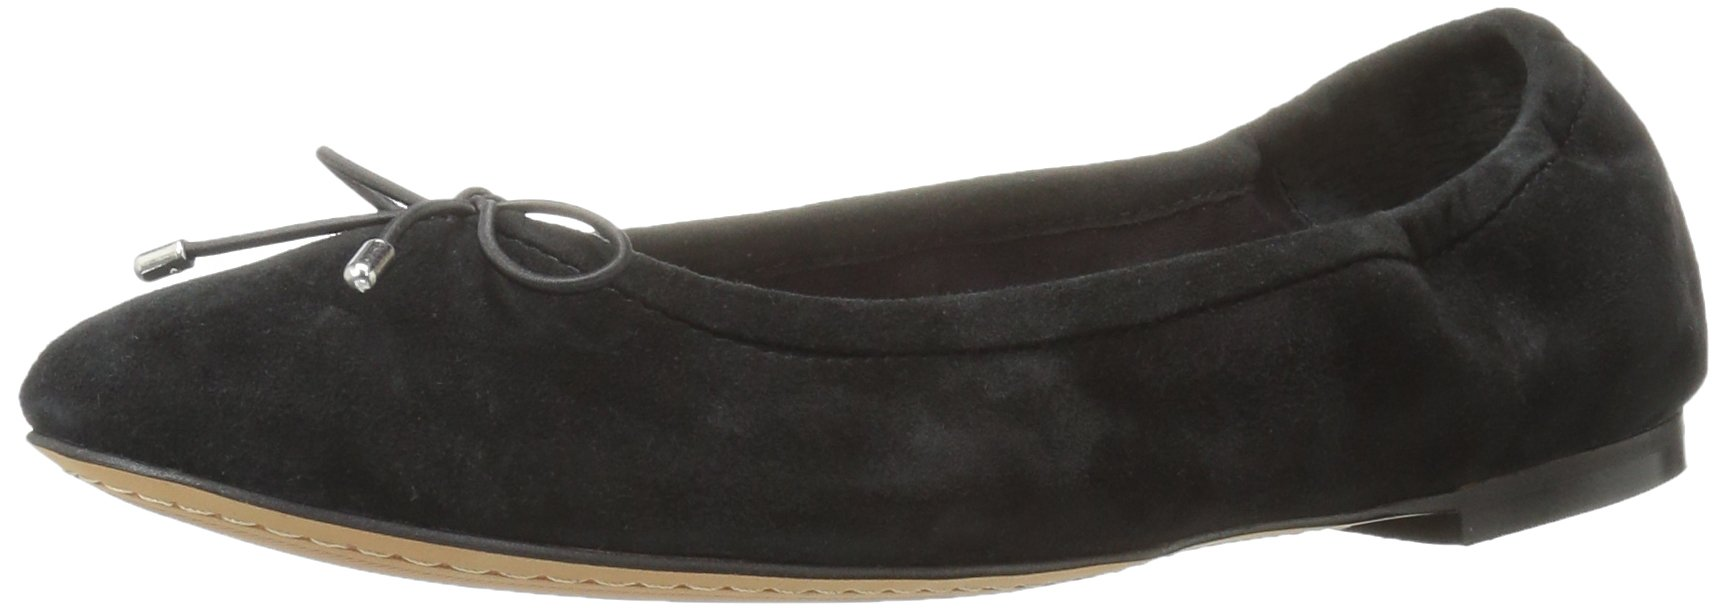 206 Collective Women's Madison Ballet Flat, Black, 7 C/D US